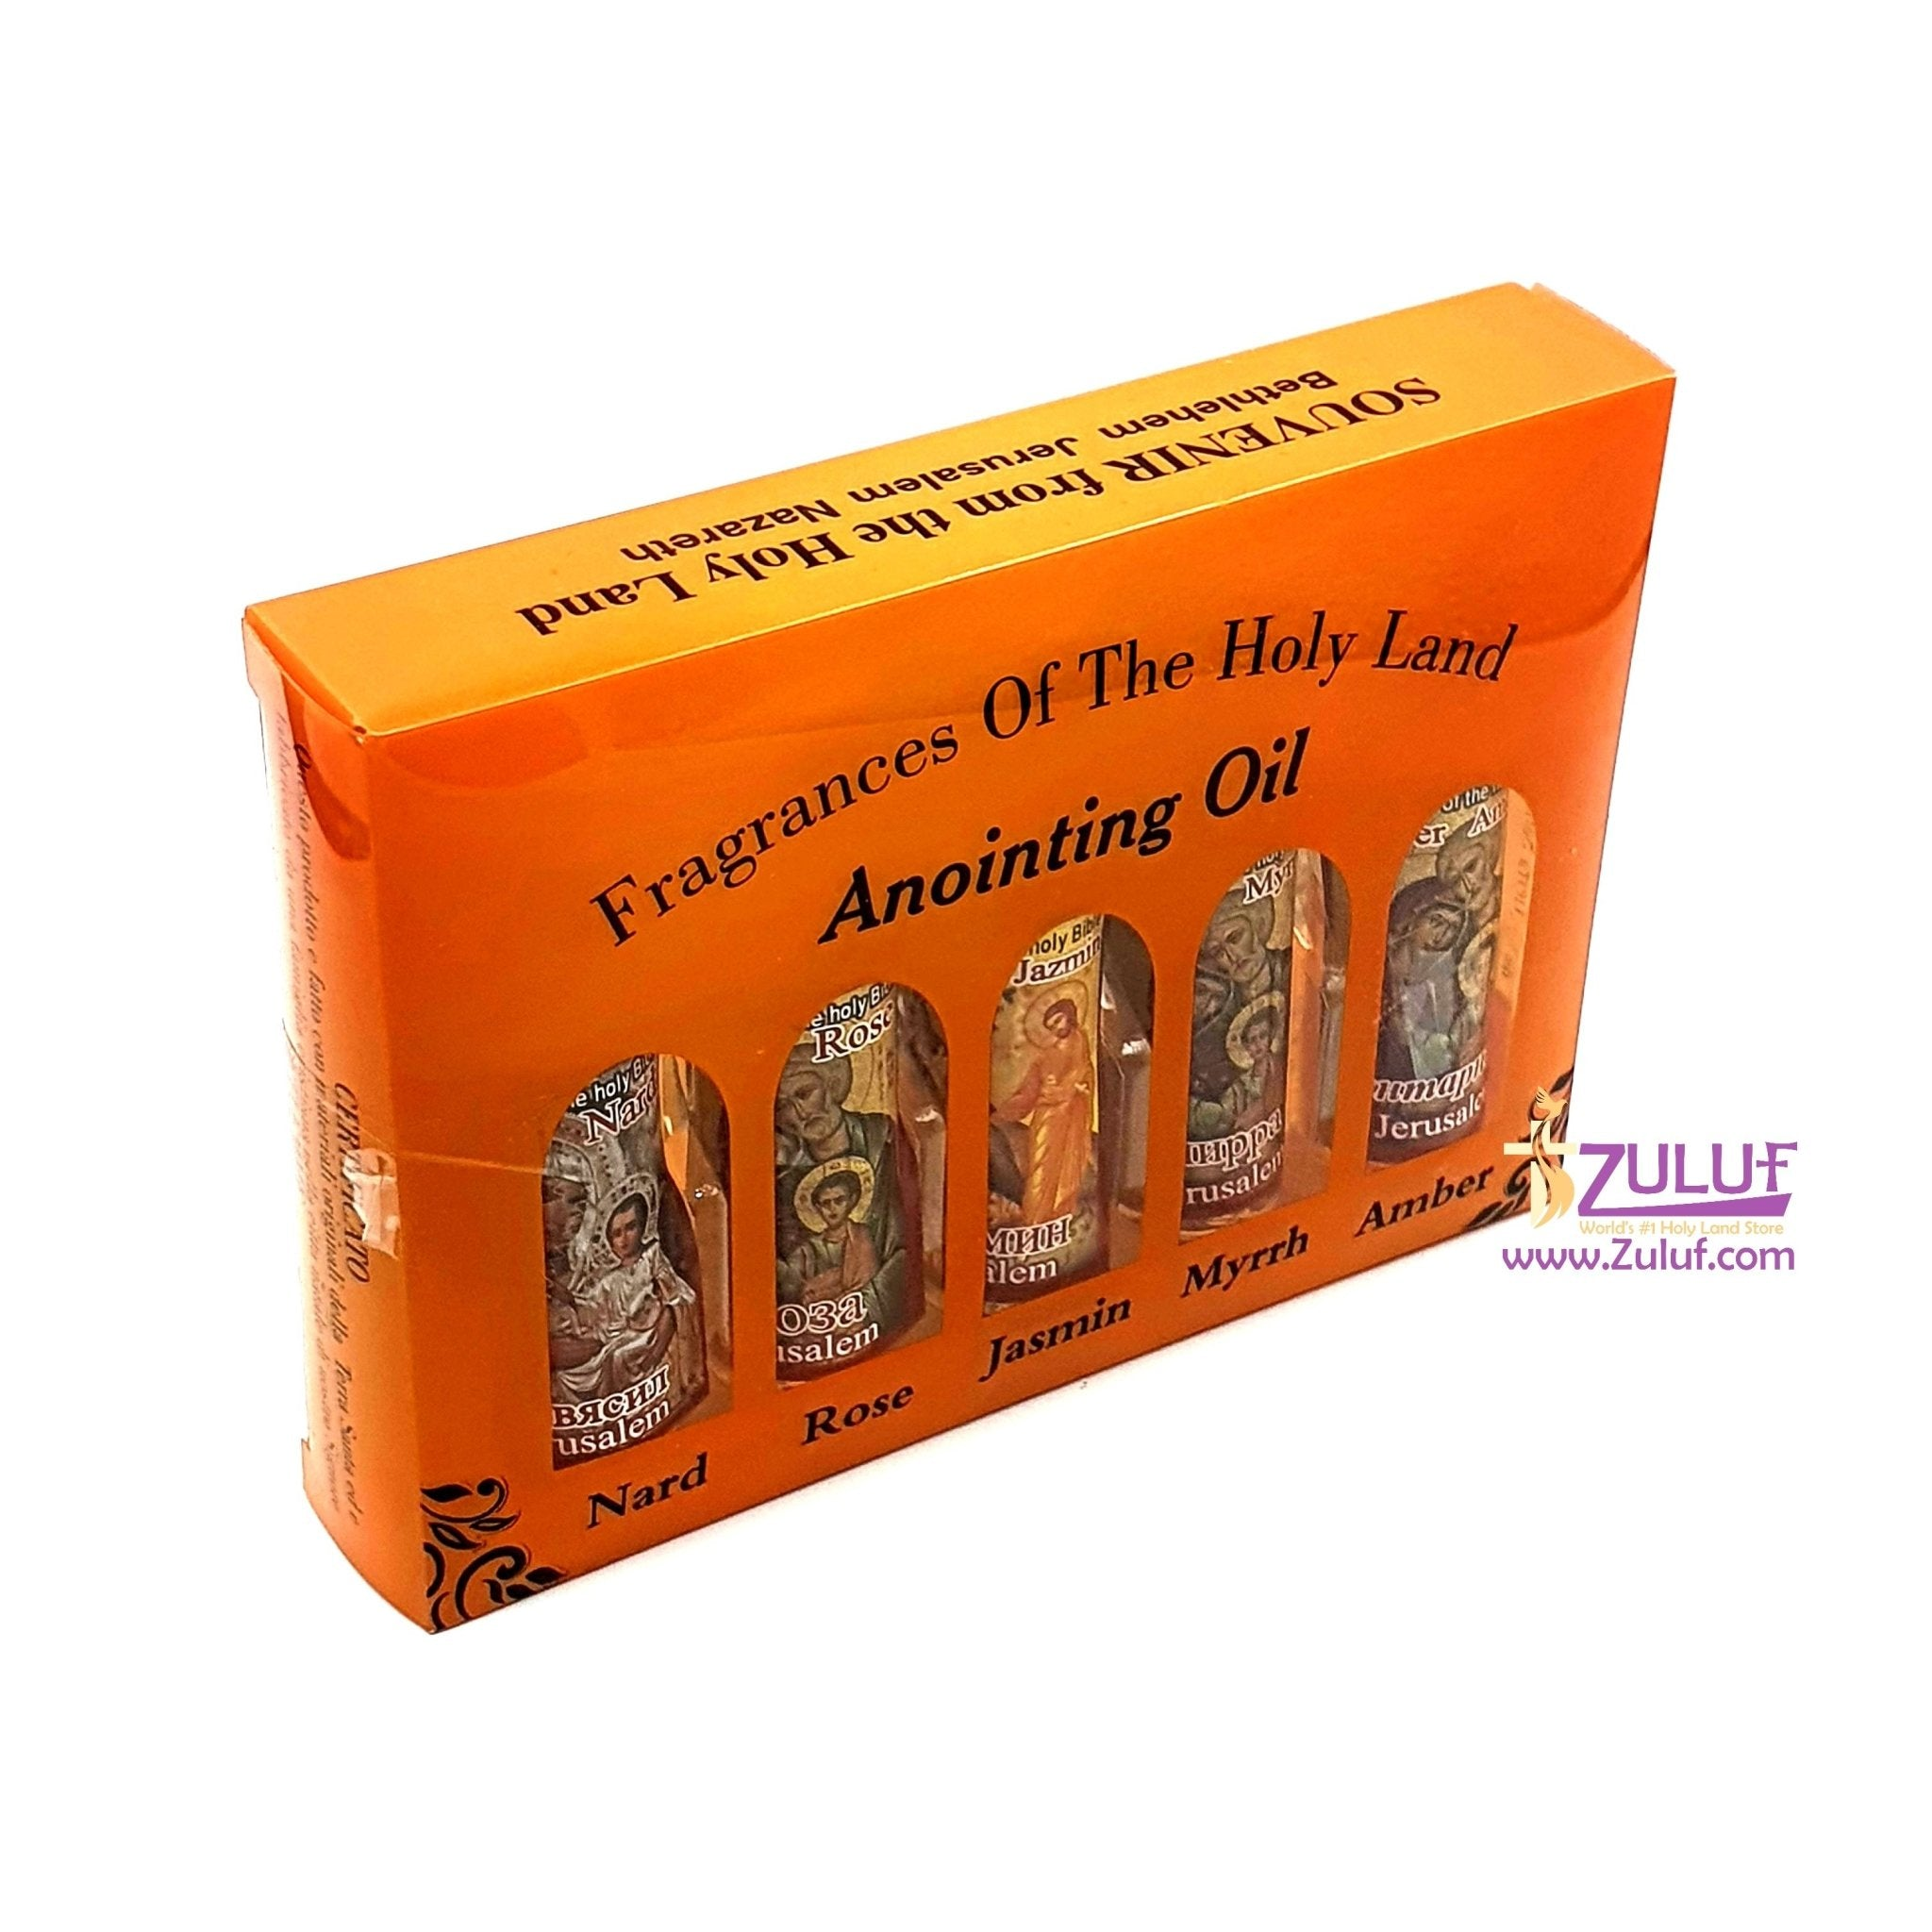 Set of 5 Roll-On Anointing Oils Jasmin Myrrh Amber Nard and Rose from Jerusalem Different anointing Oils Set from The Holy Land NPER023 Zuluf - Zuluf